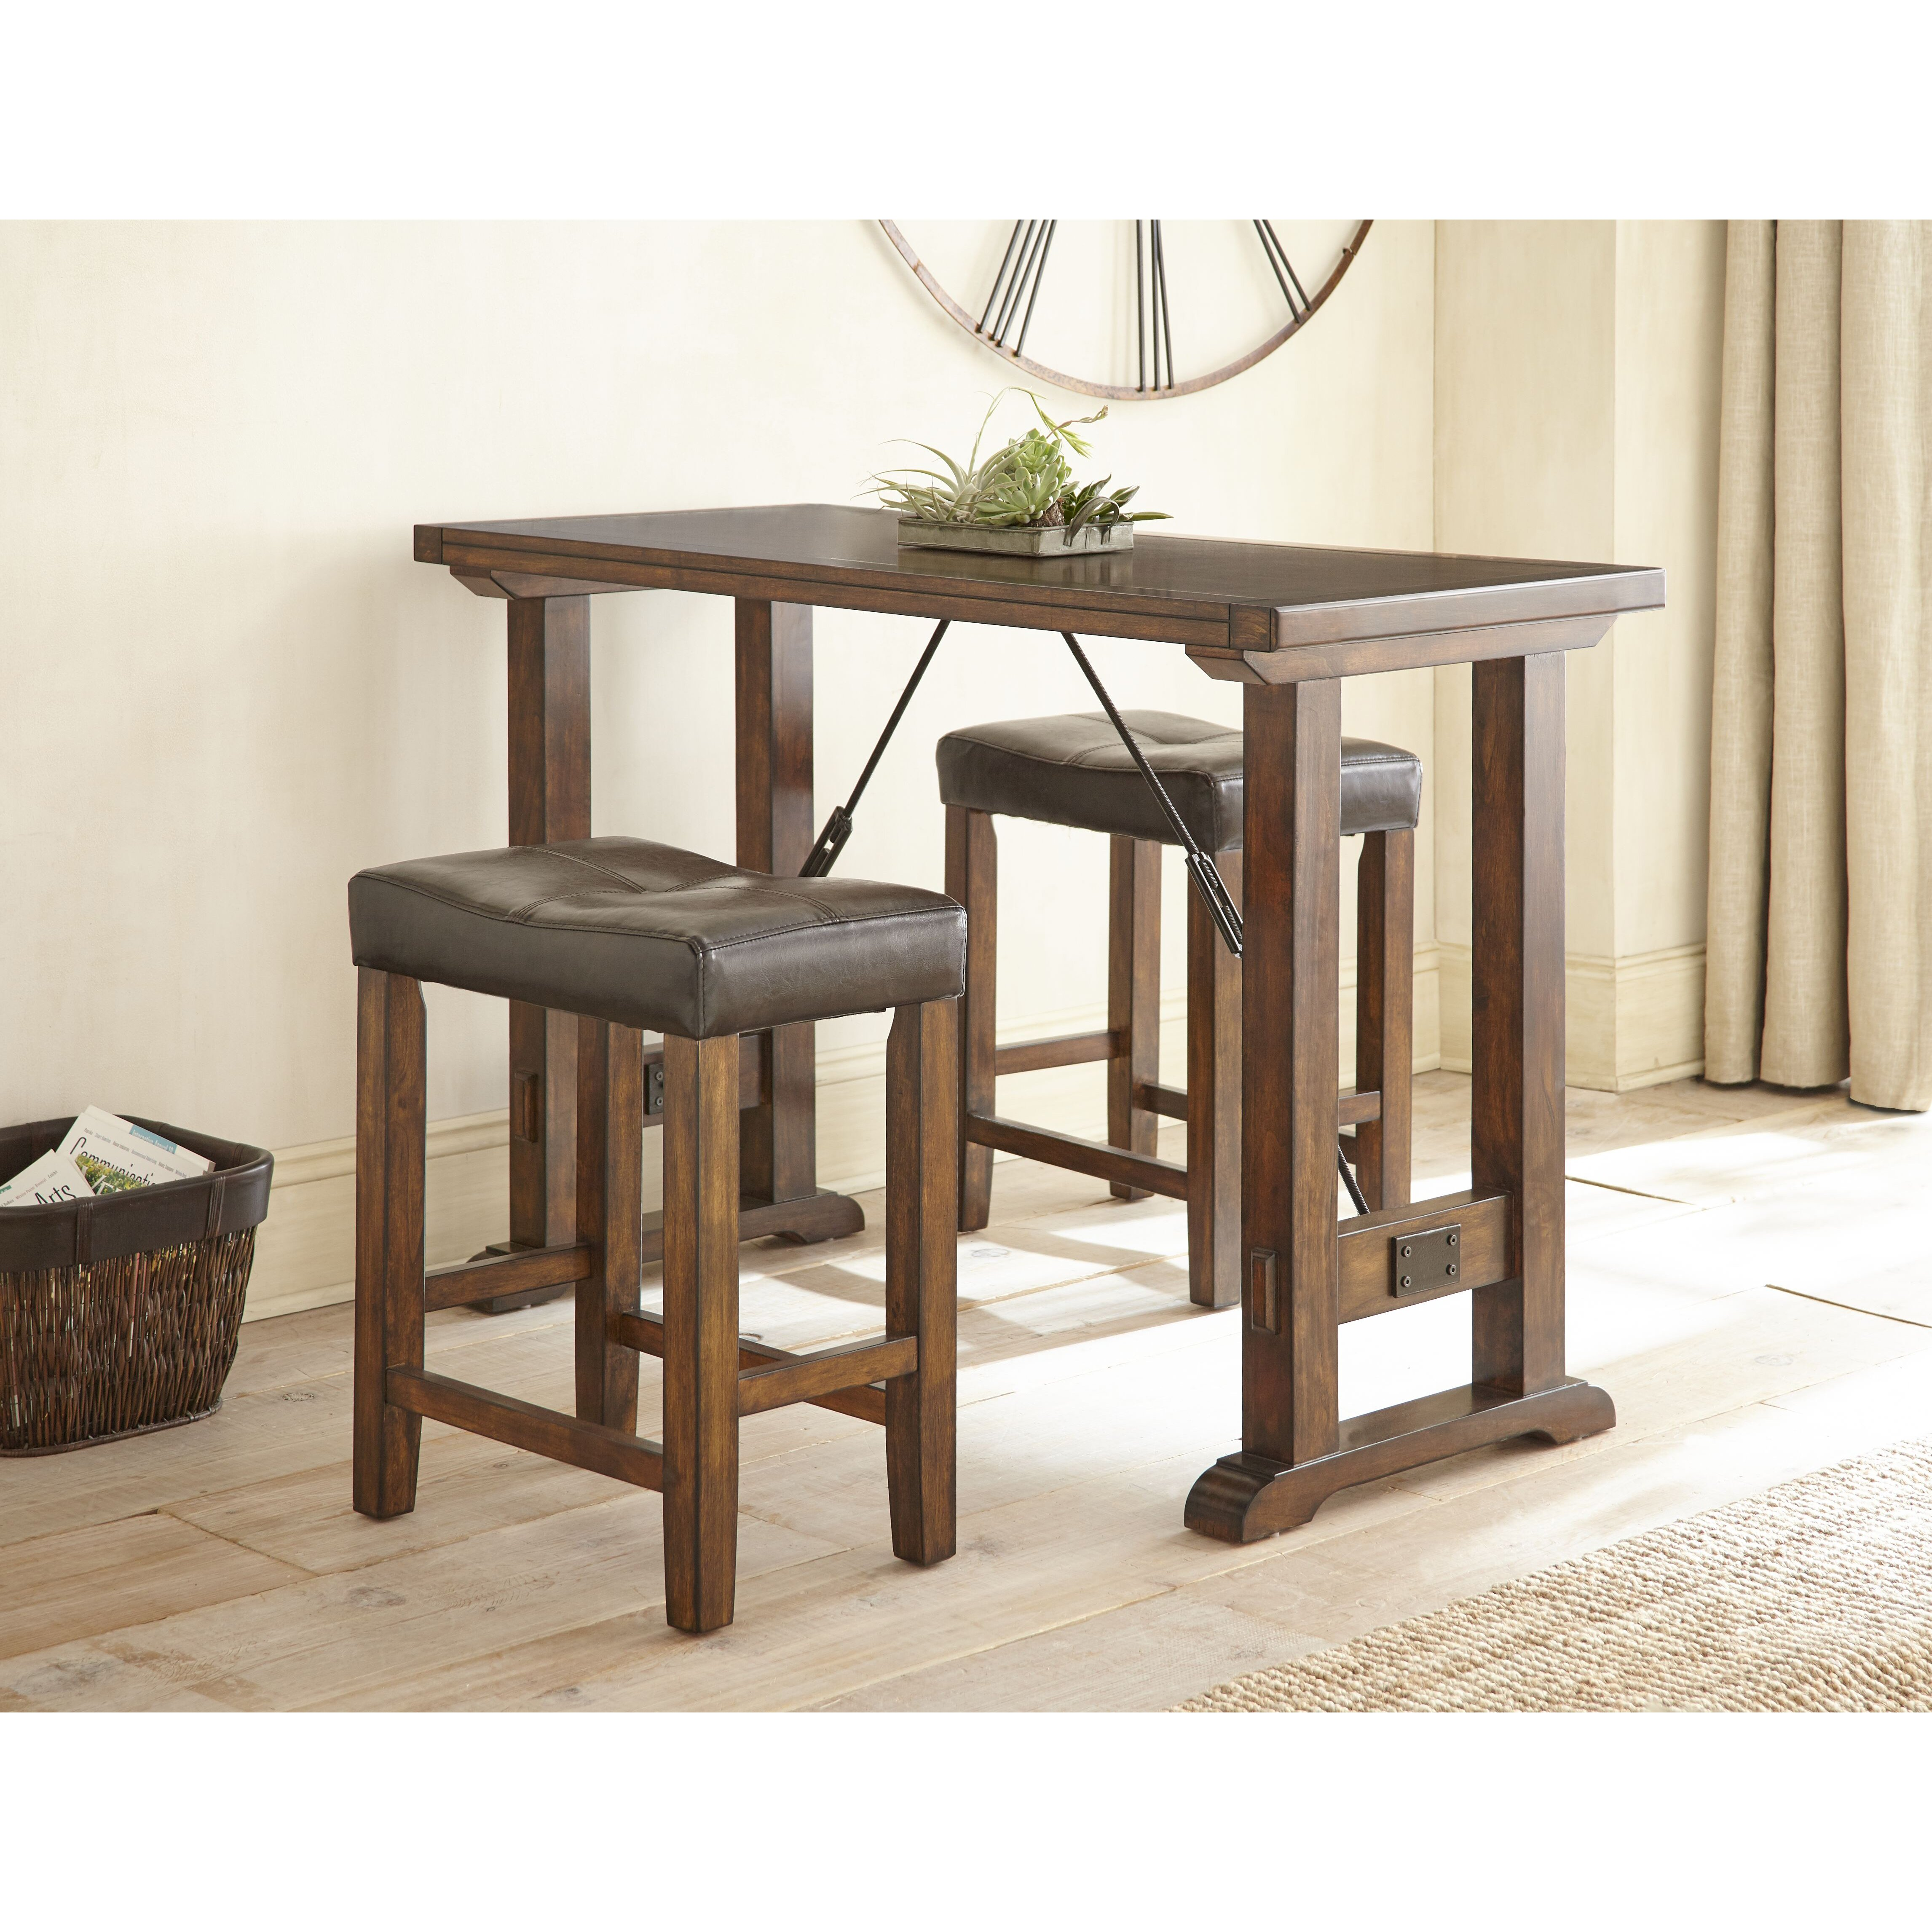 Steve Silver Furniture Colin 3 Piece Counter Height Dining Set ...